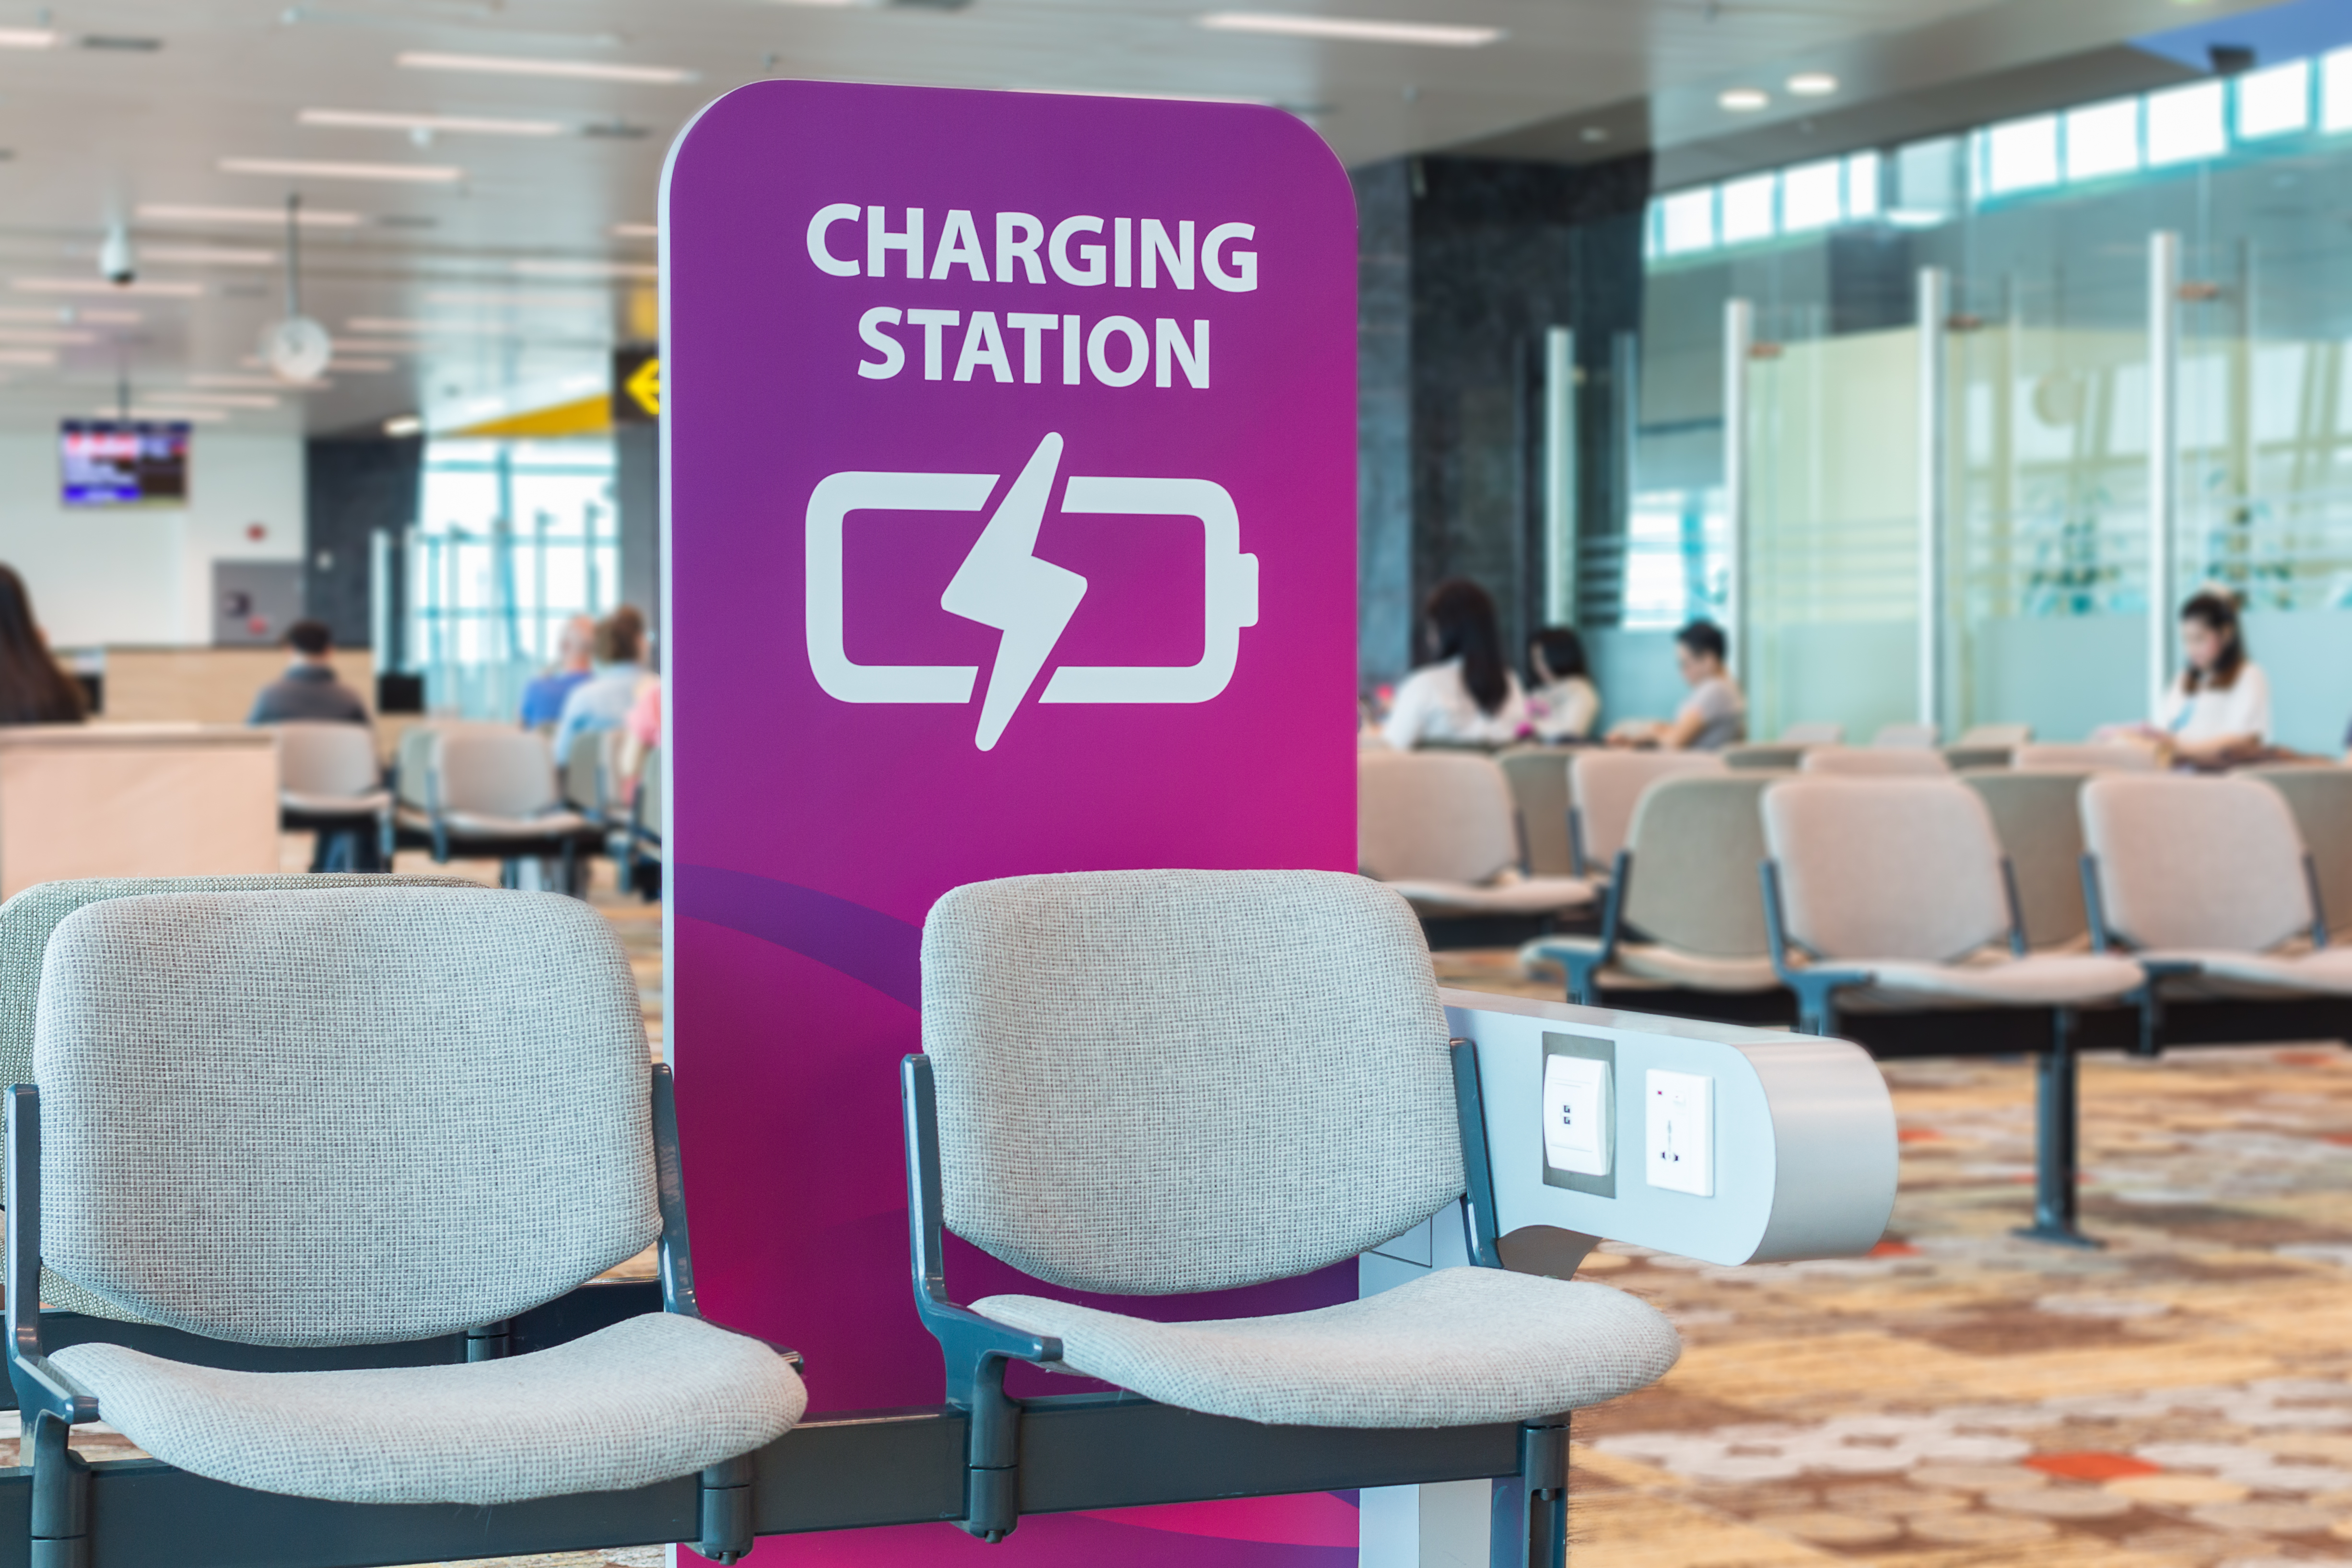 A Charging Station in an airports